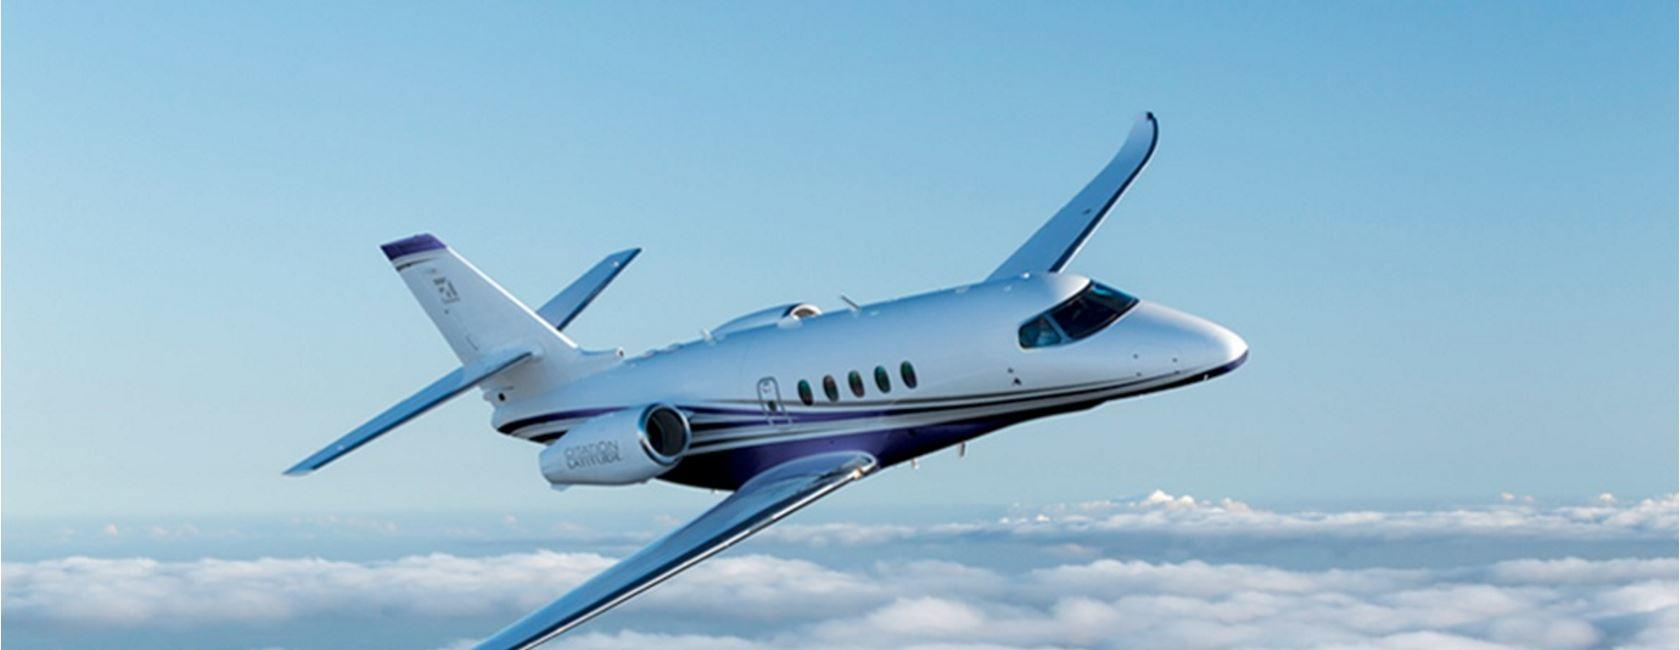 Citation Latitude: 2018's Most Delivered Midsize Business Jet